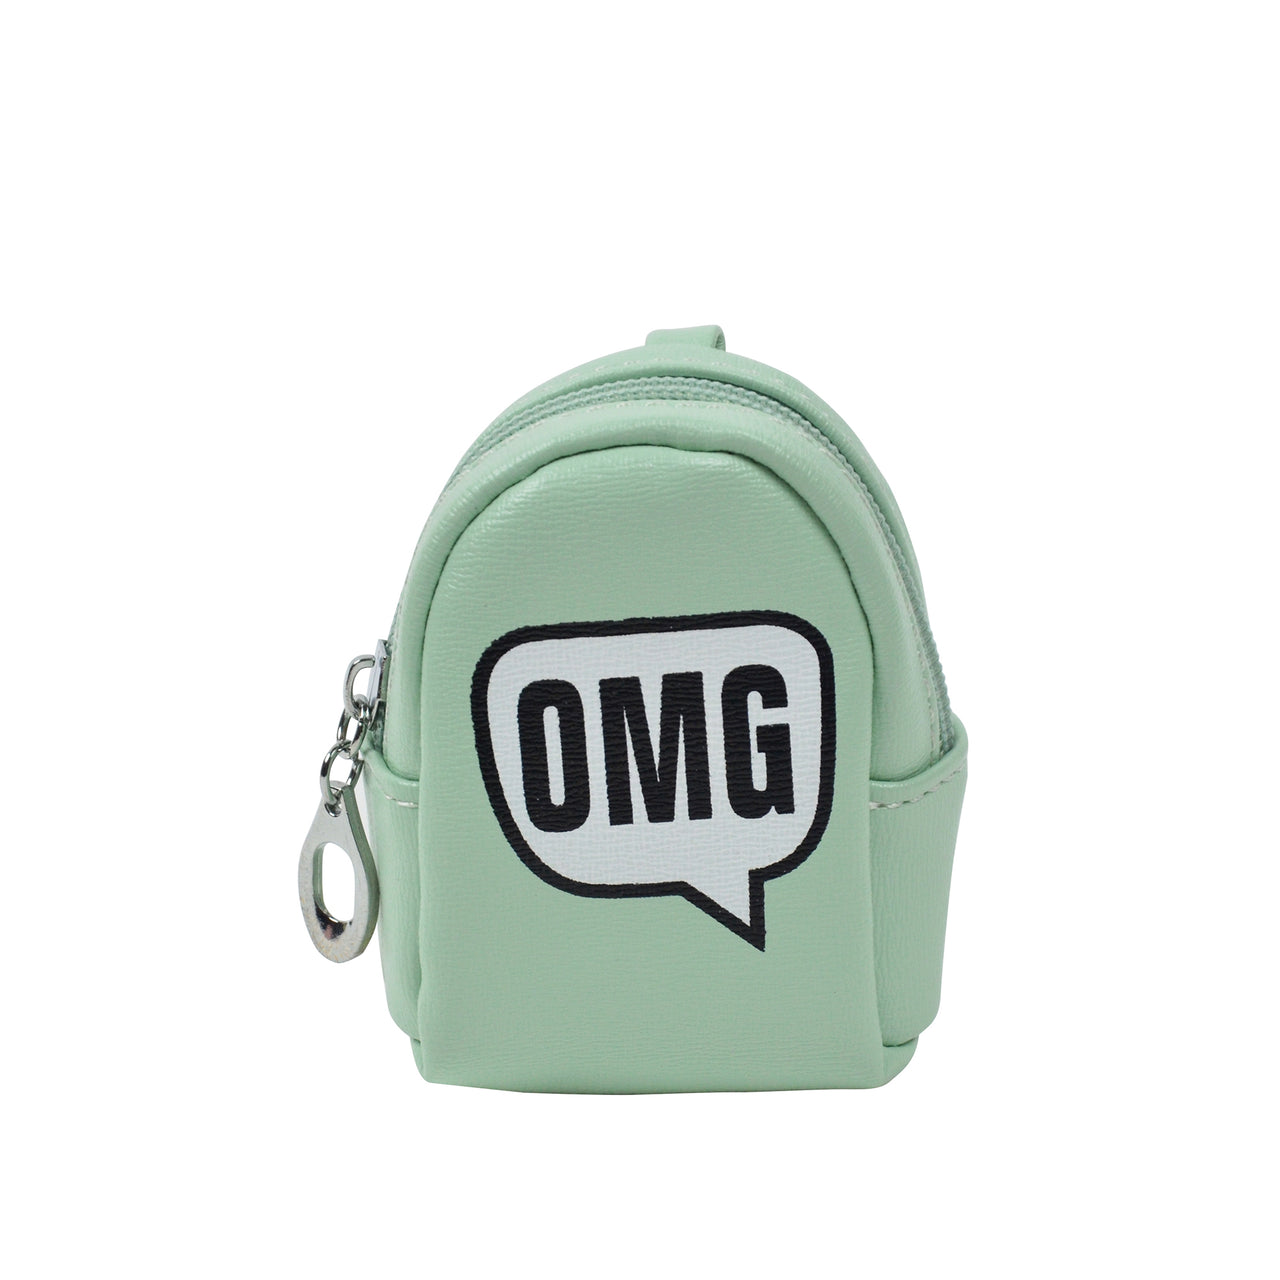 OMG Light Green Key ring Chain Holder Coin Purse